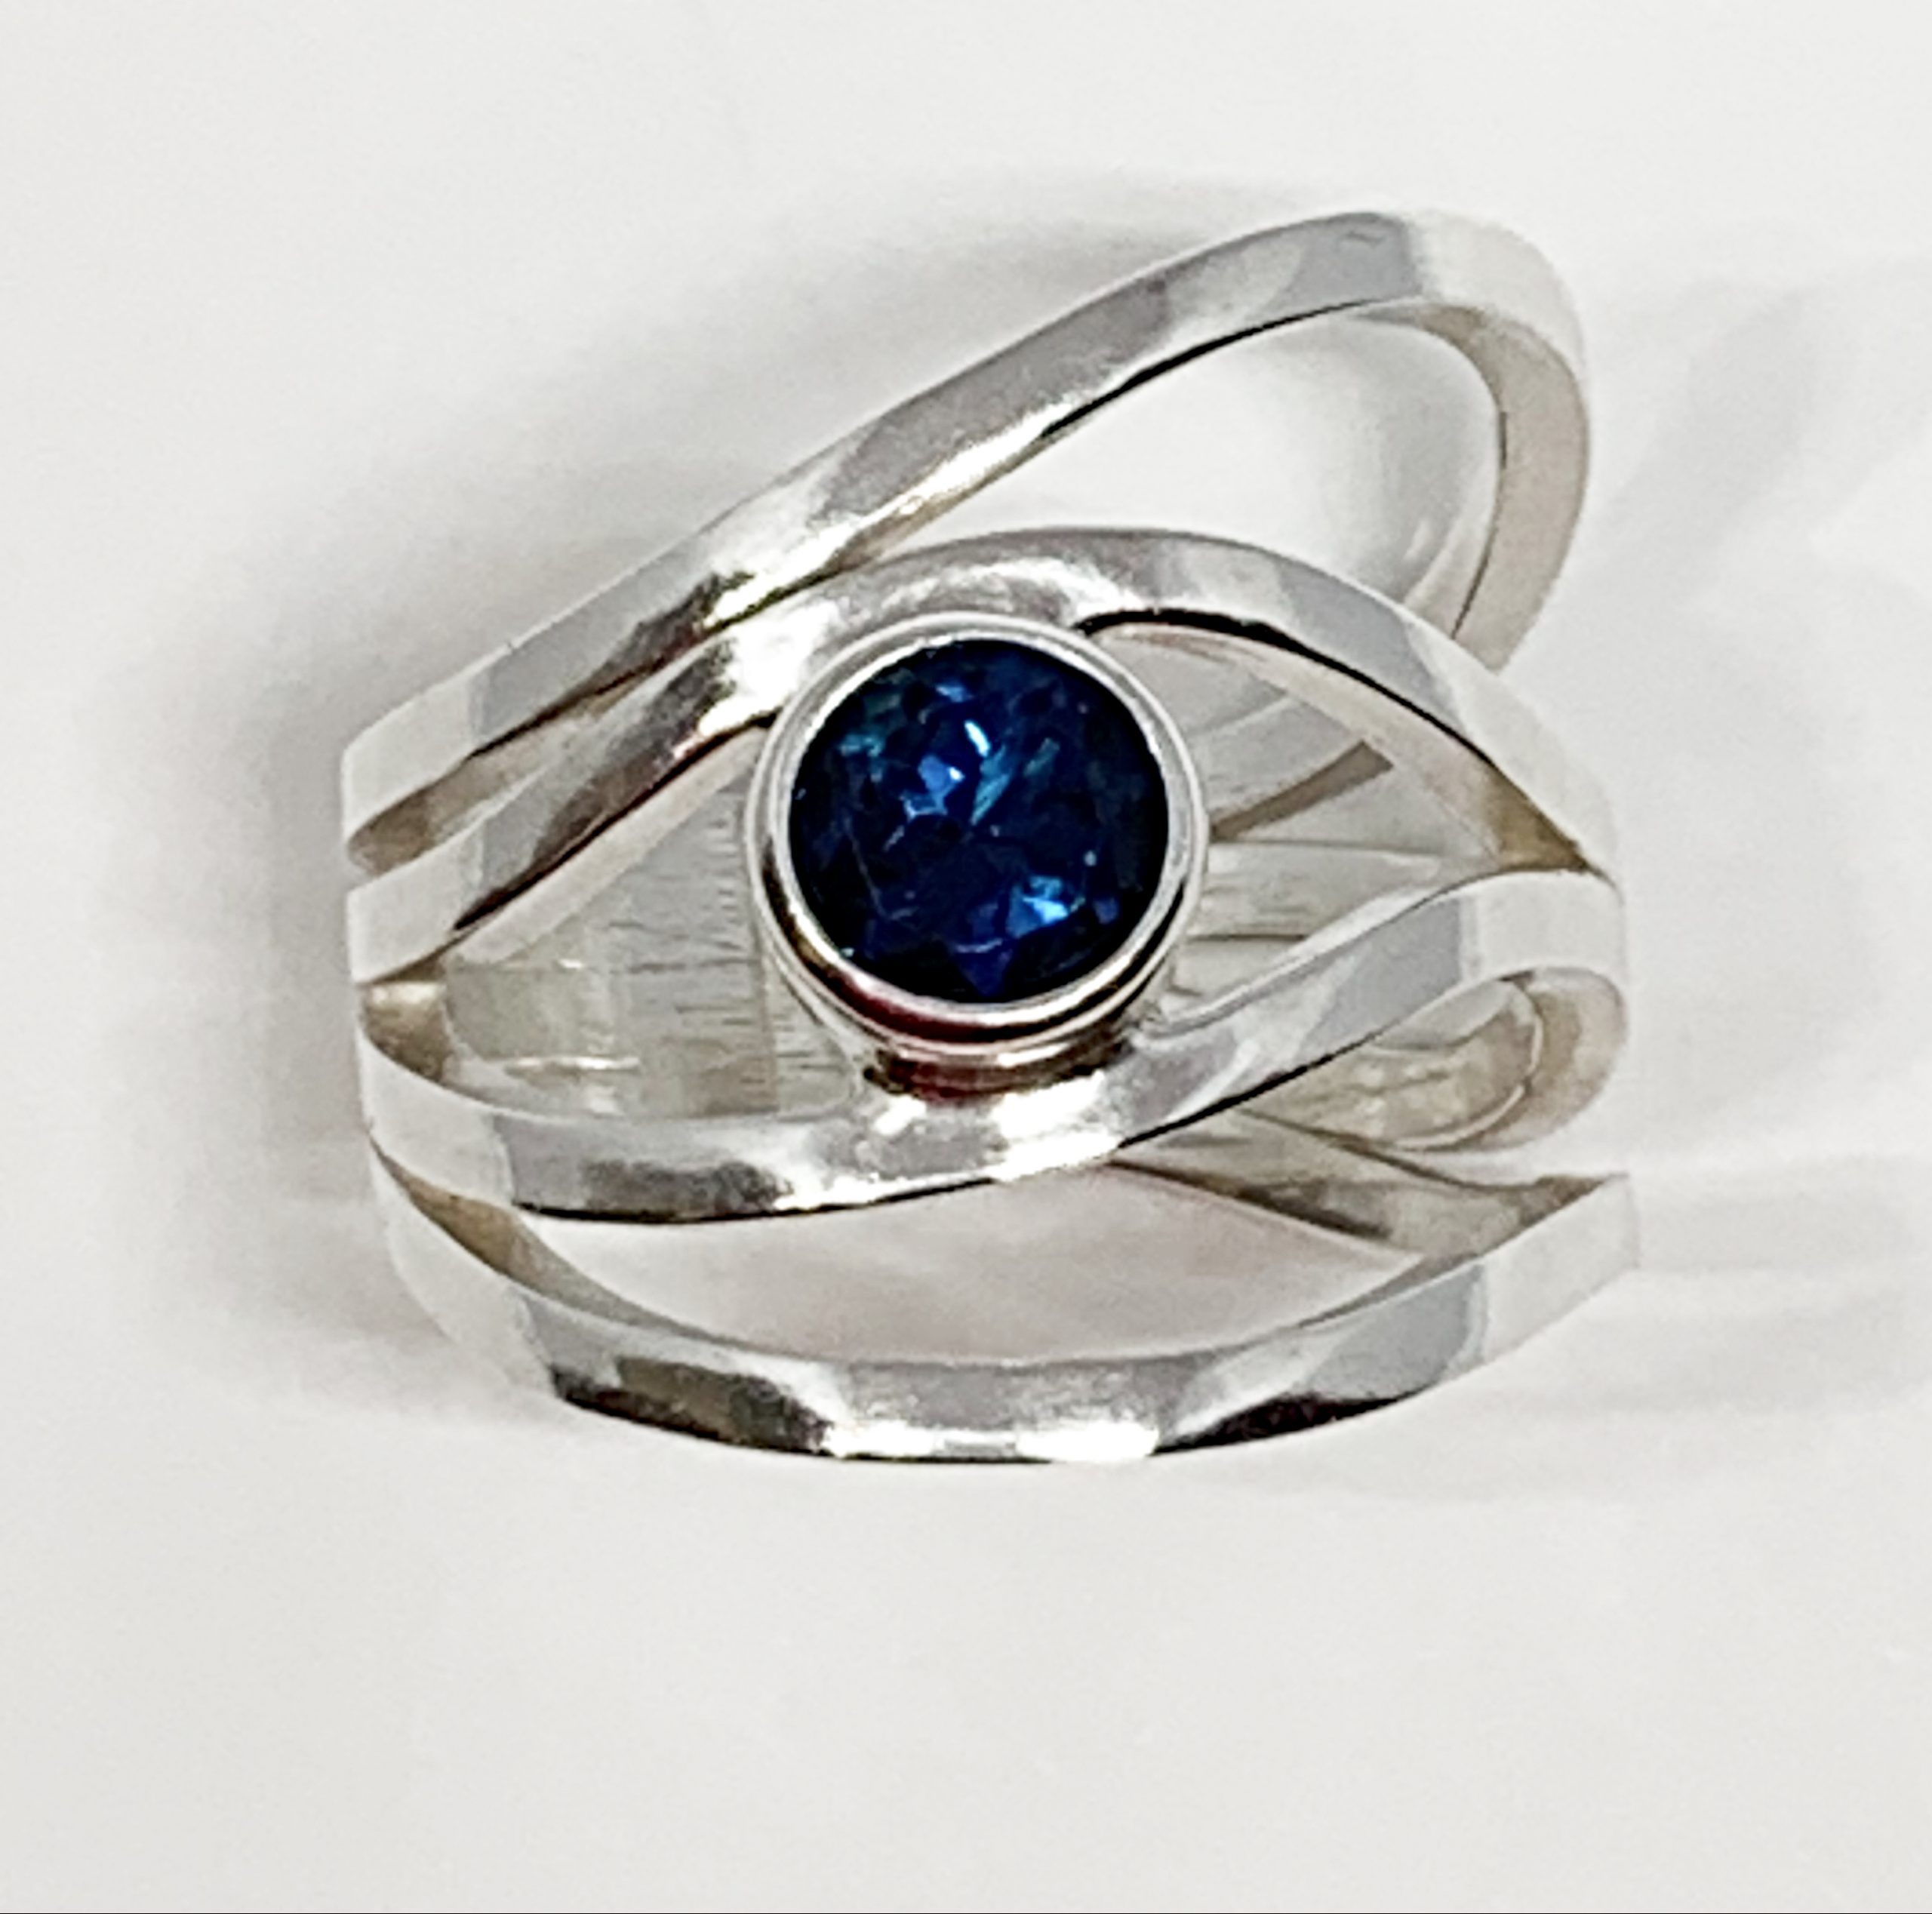 1ct London topaz + sterling silver ring by A&R Jewellery   Effusion Art Gallery + Cast Glass Studio, Invermere BC